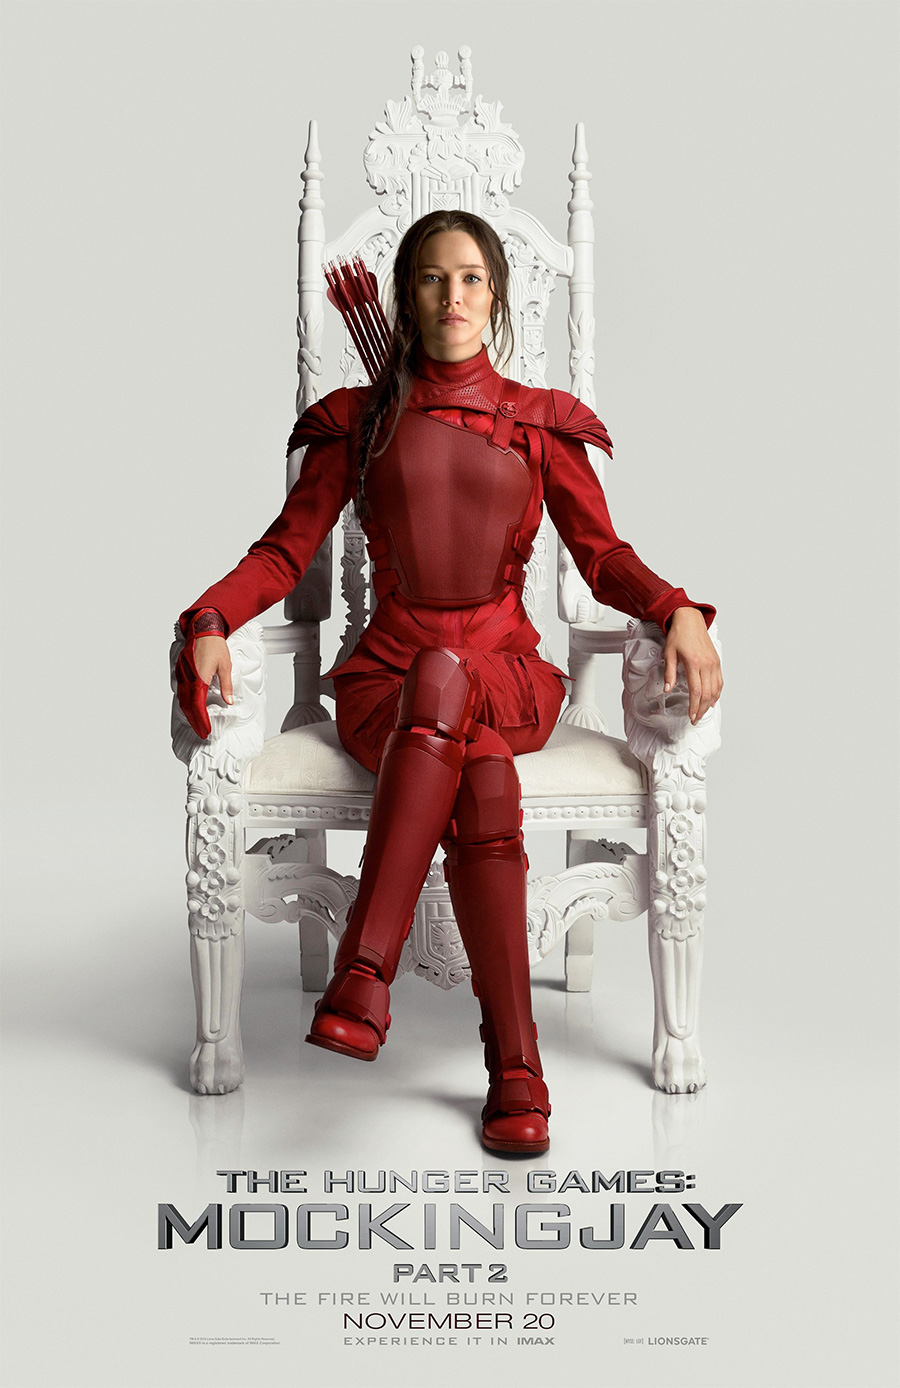 The worldwide phenomenon of The Hunger Games continues to set the world on fire with The Hunger Games: Mockingjay - Part 1, which finds Katniss Everdeen (Jennifer Lawrence) in District 13 after she literally shatters the games forever.